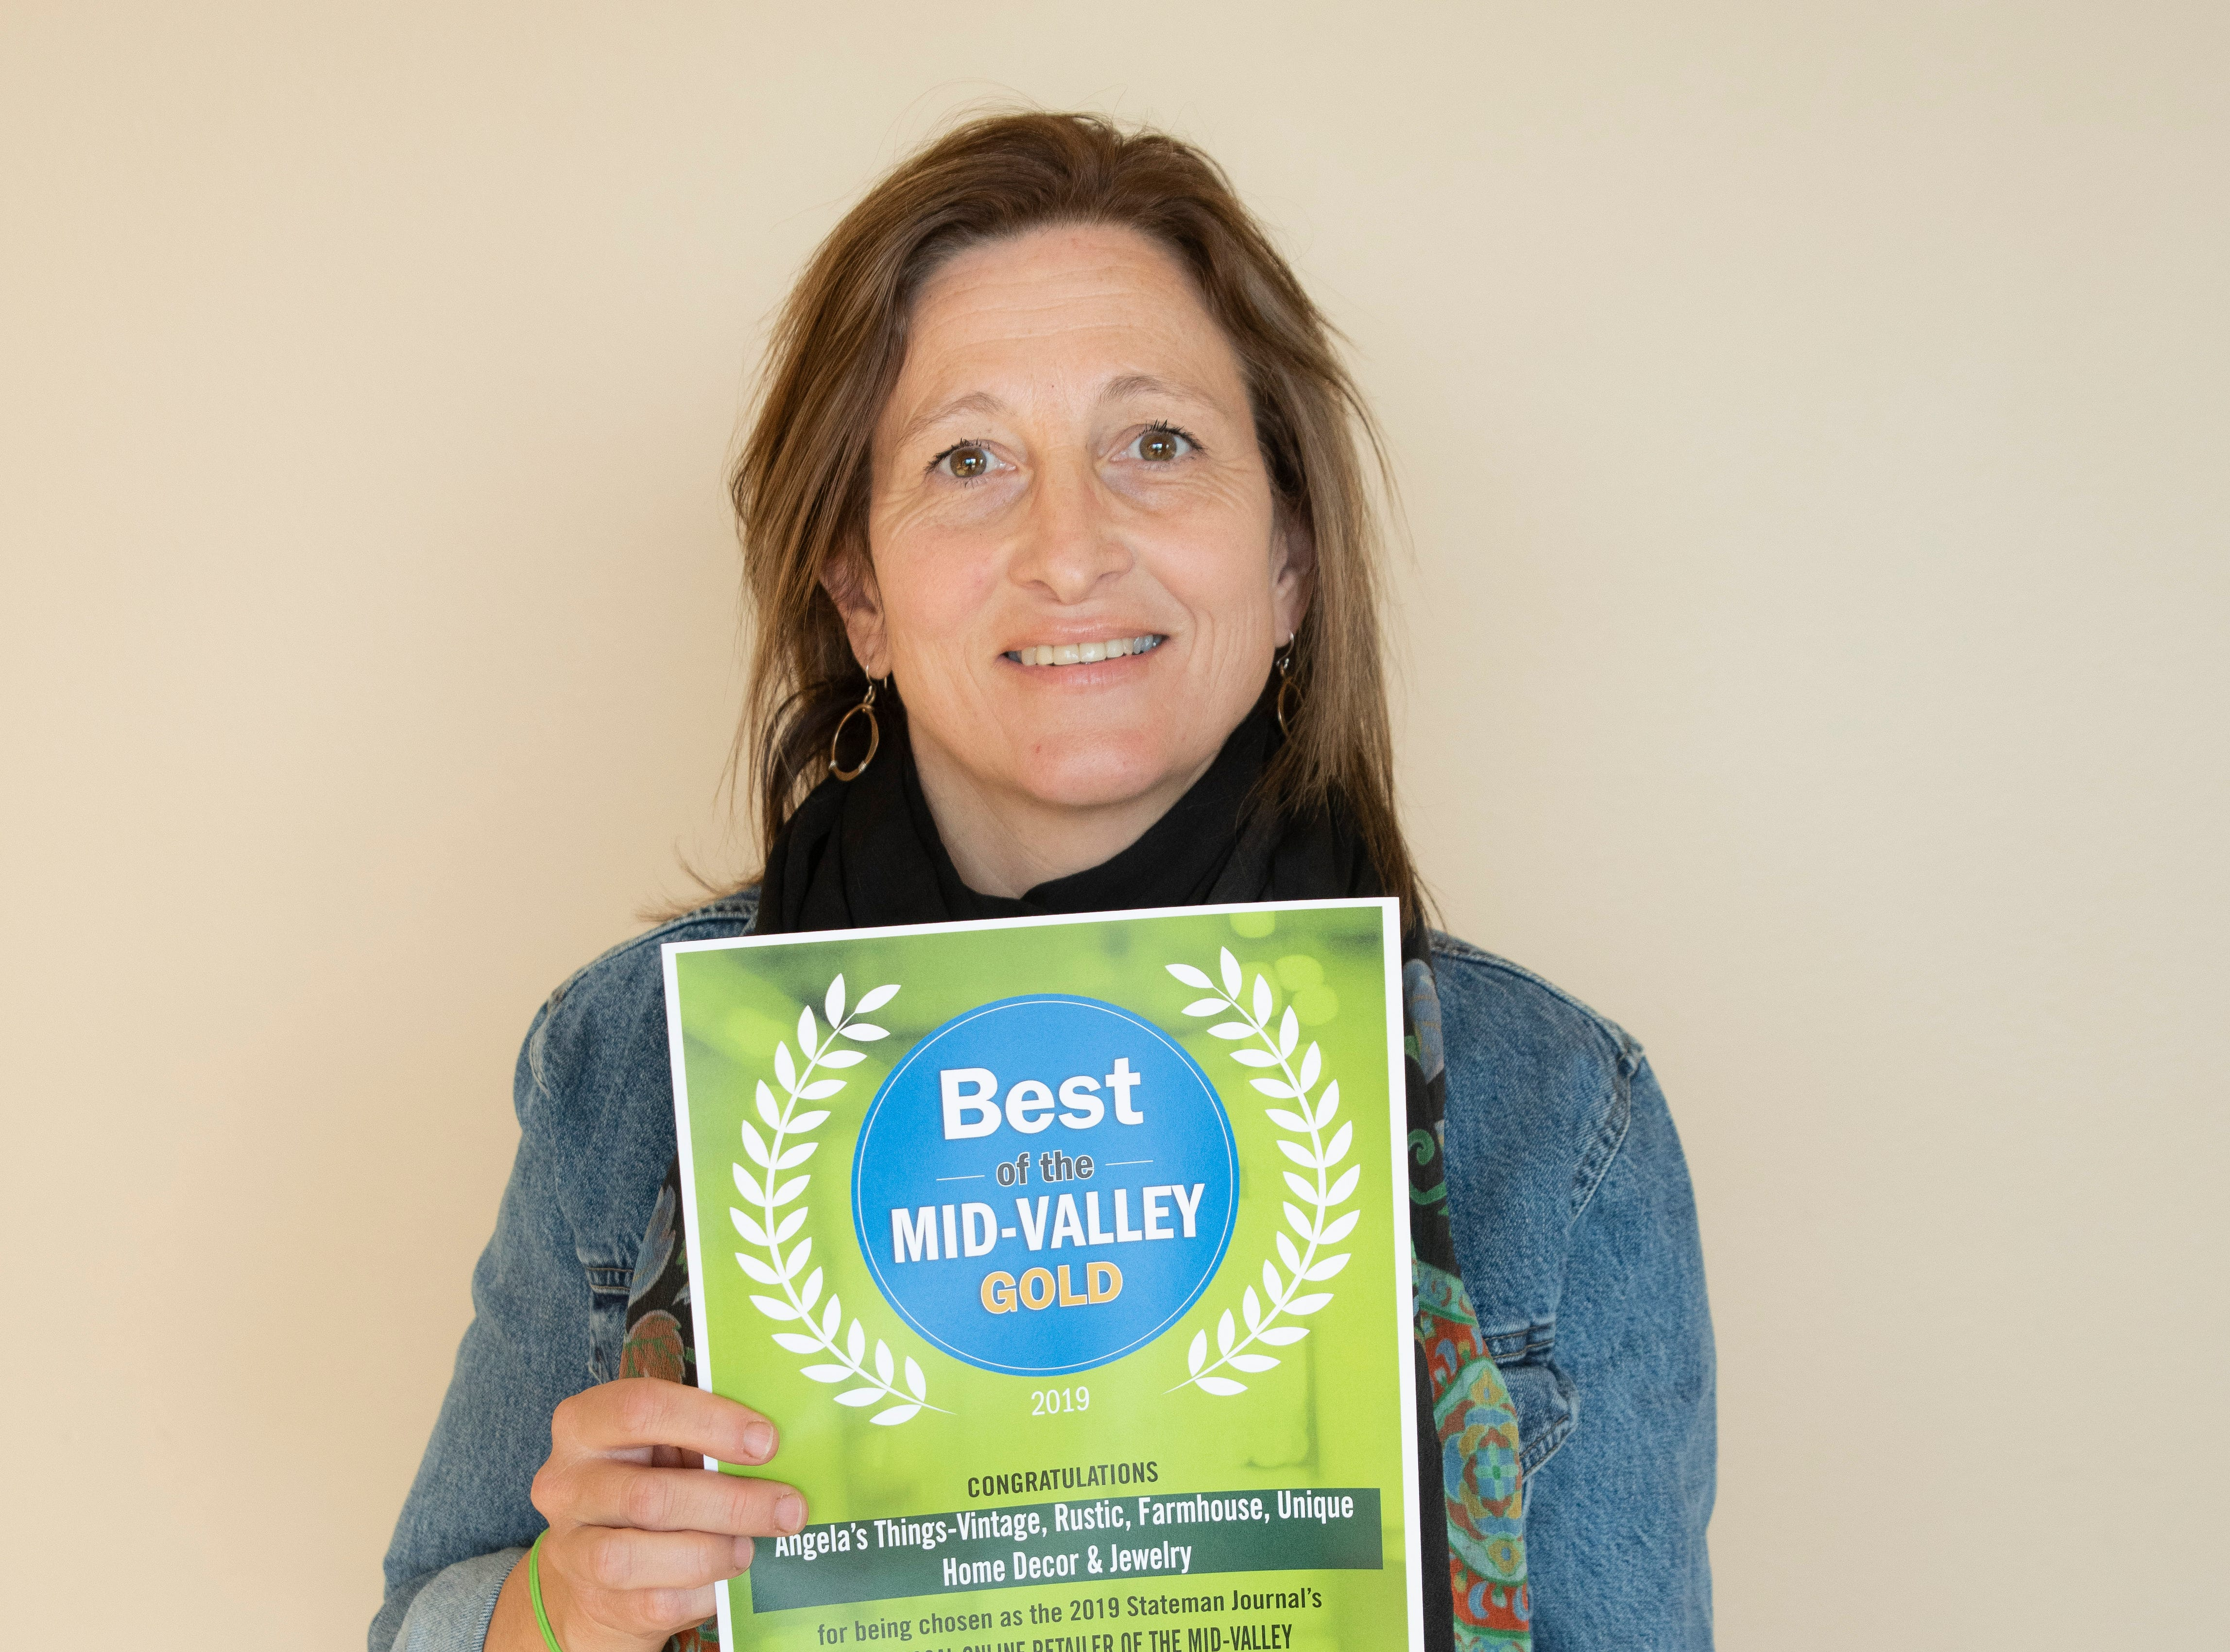 Angela's Things won gold for Best Local Online Retailer in the 2019 Best of the Mid-Valley.